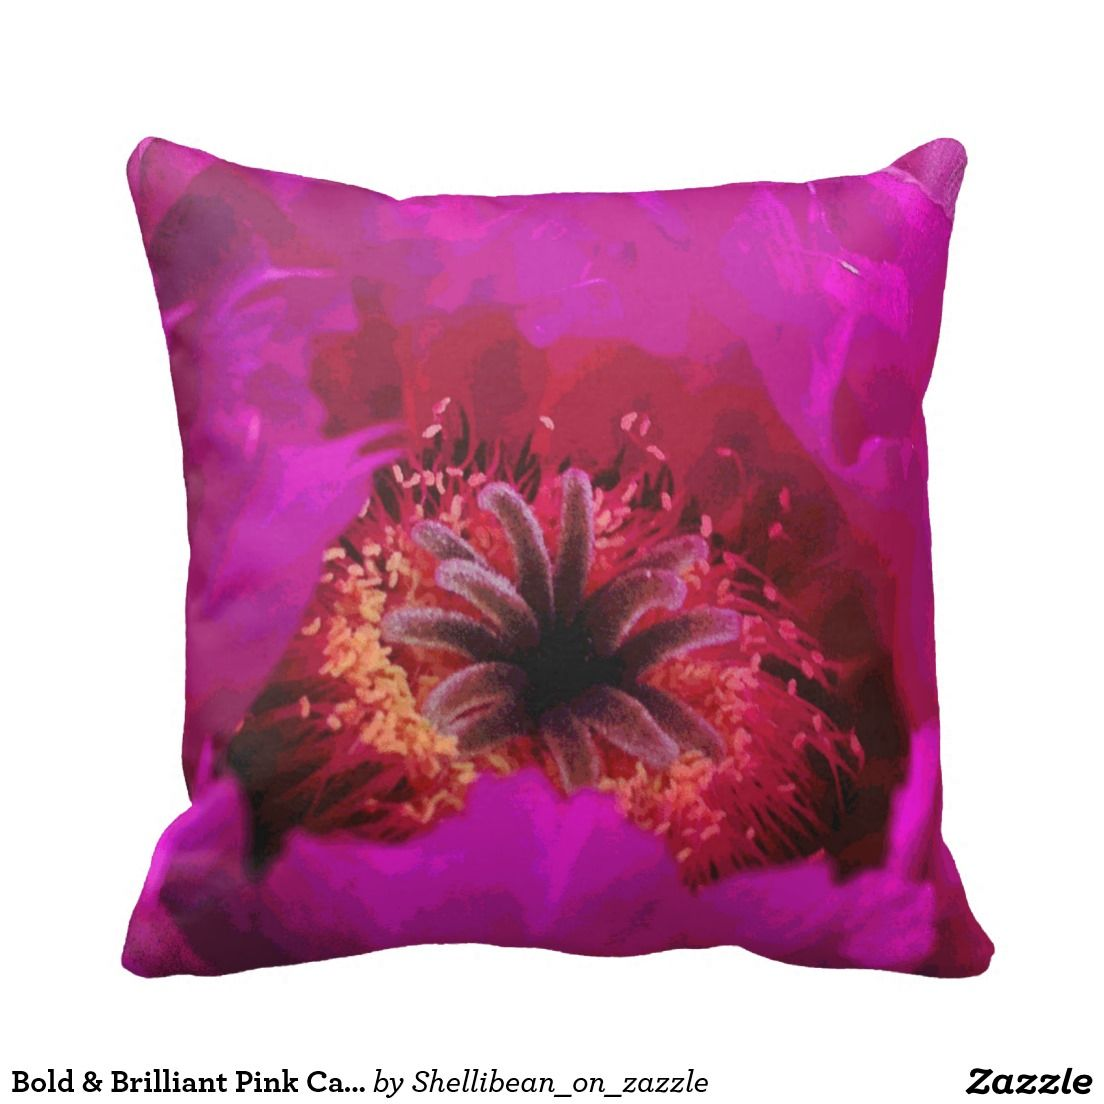 Bold Brilliant Pink Cactus Flower Pillow The Zazzle Cushions